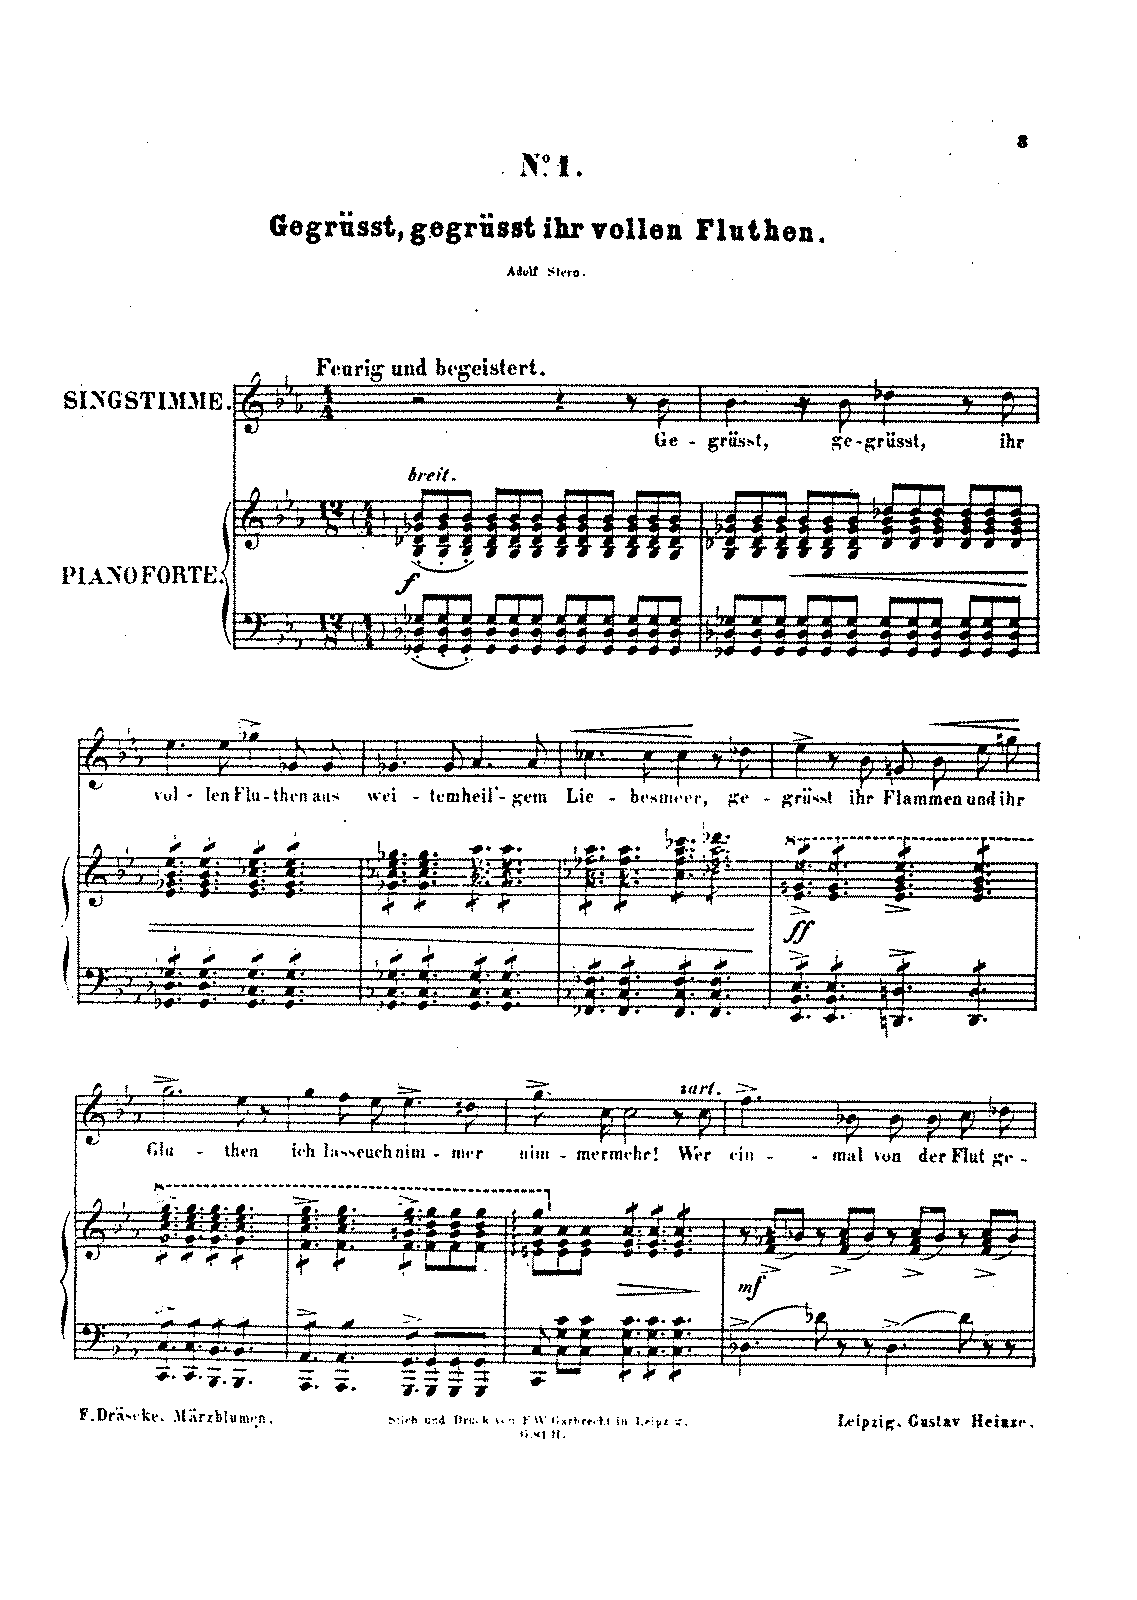 PMLP62220-Draeseke op2 I Maerzblumen songs for voice ande piano.pdf